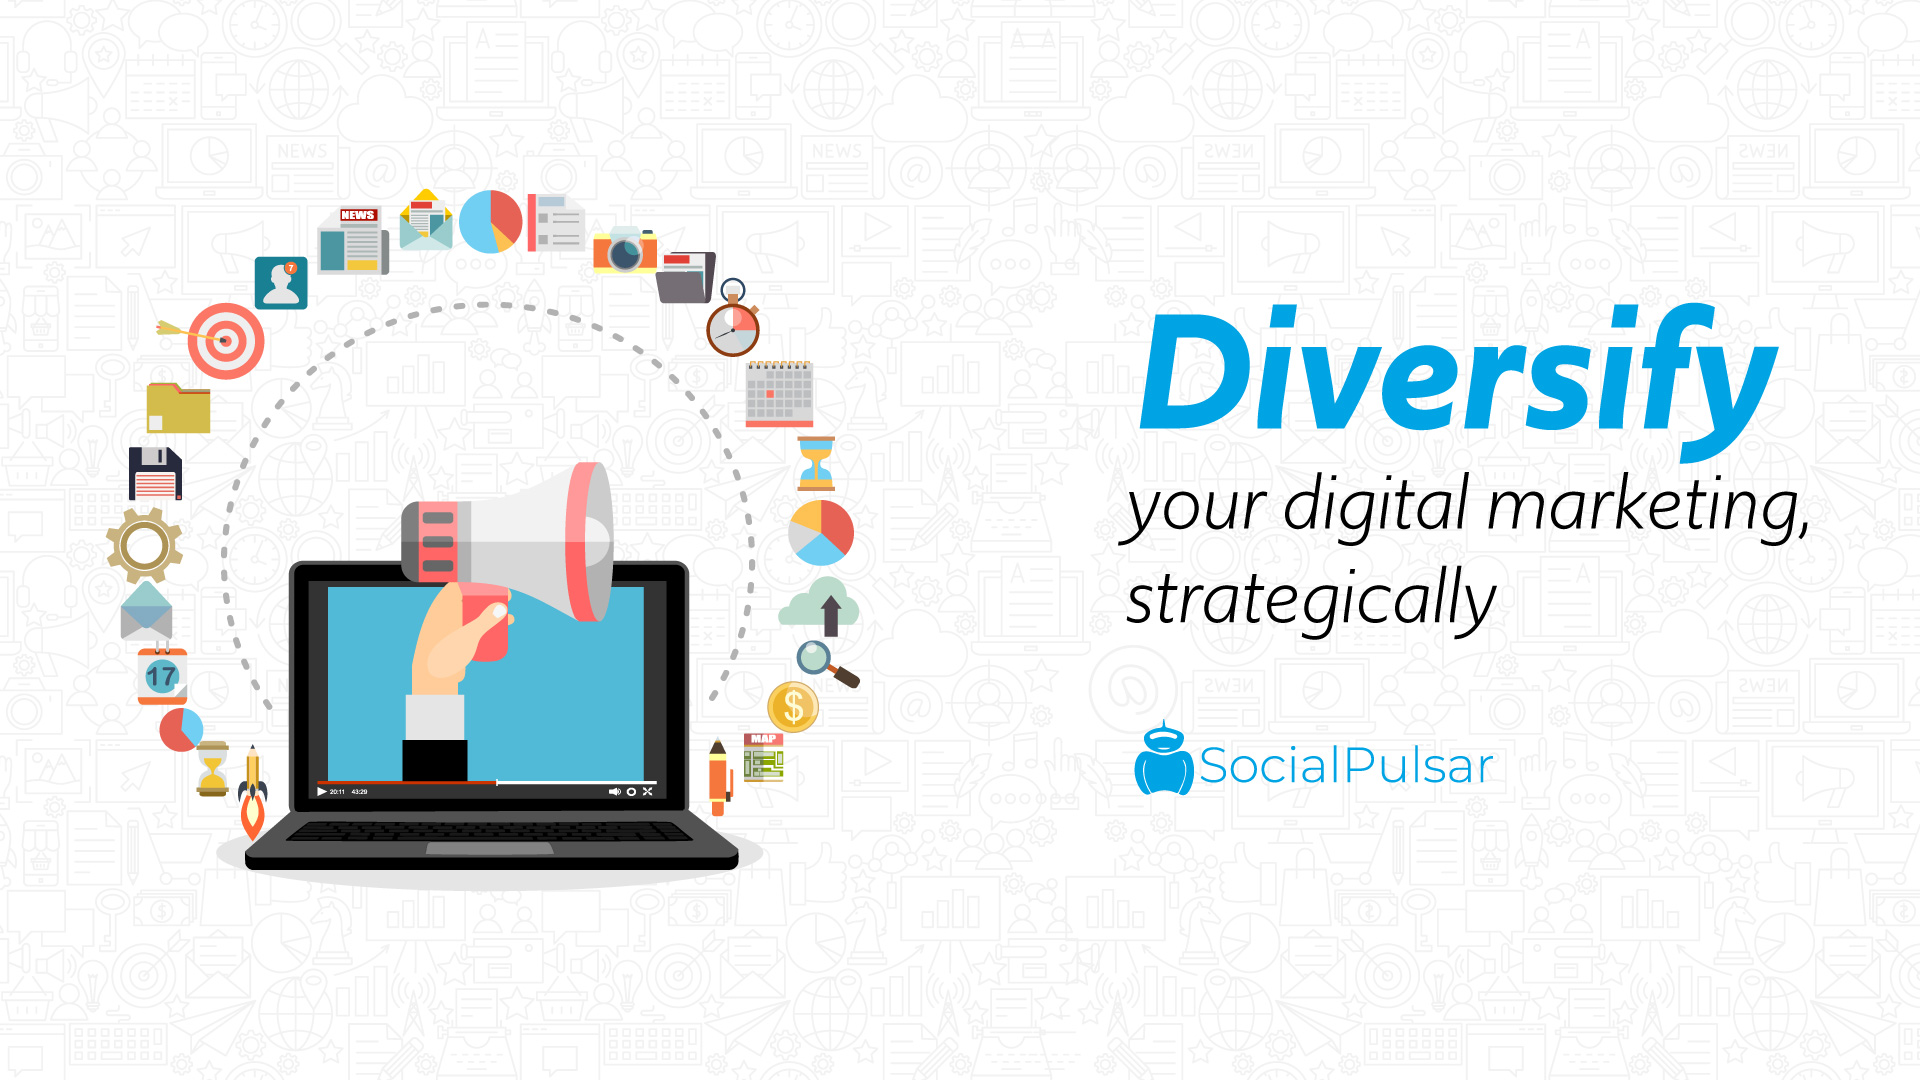 Diversify Your Digital Marketing, Strategically